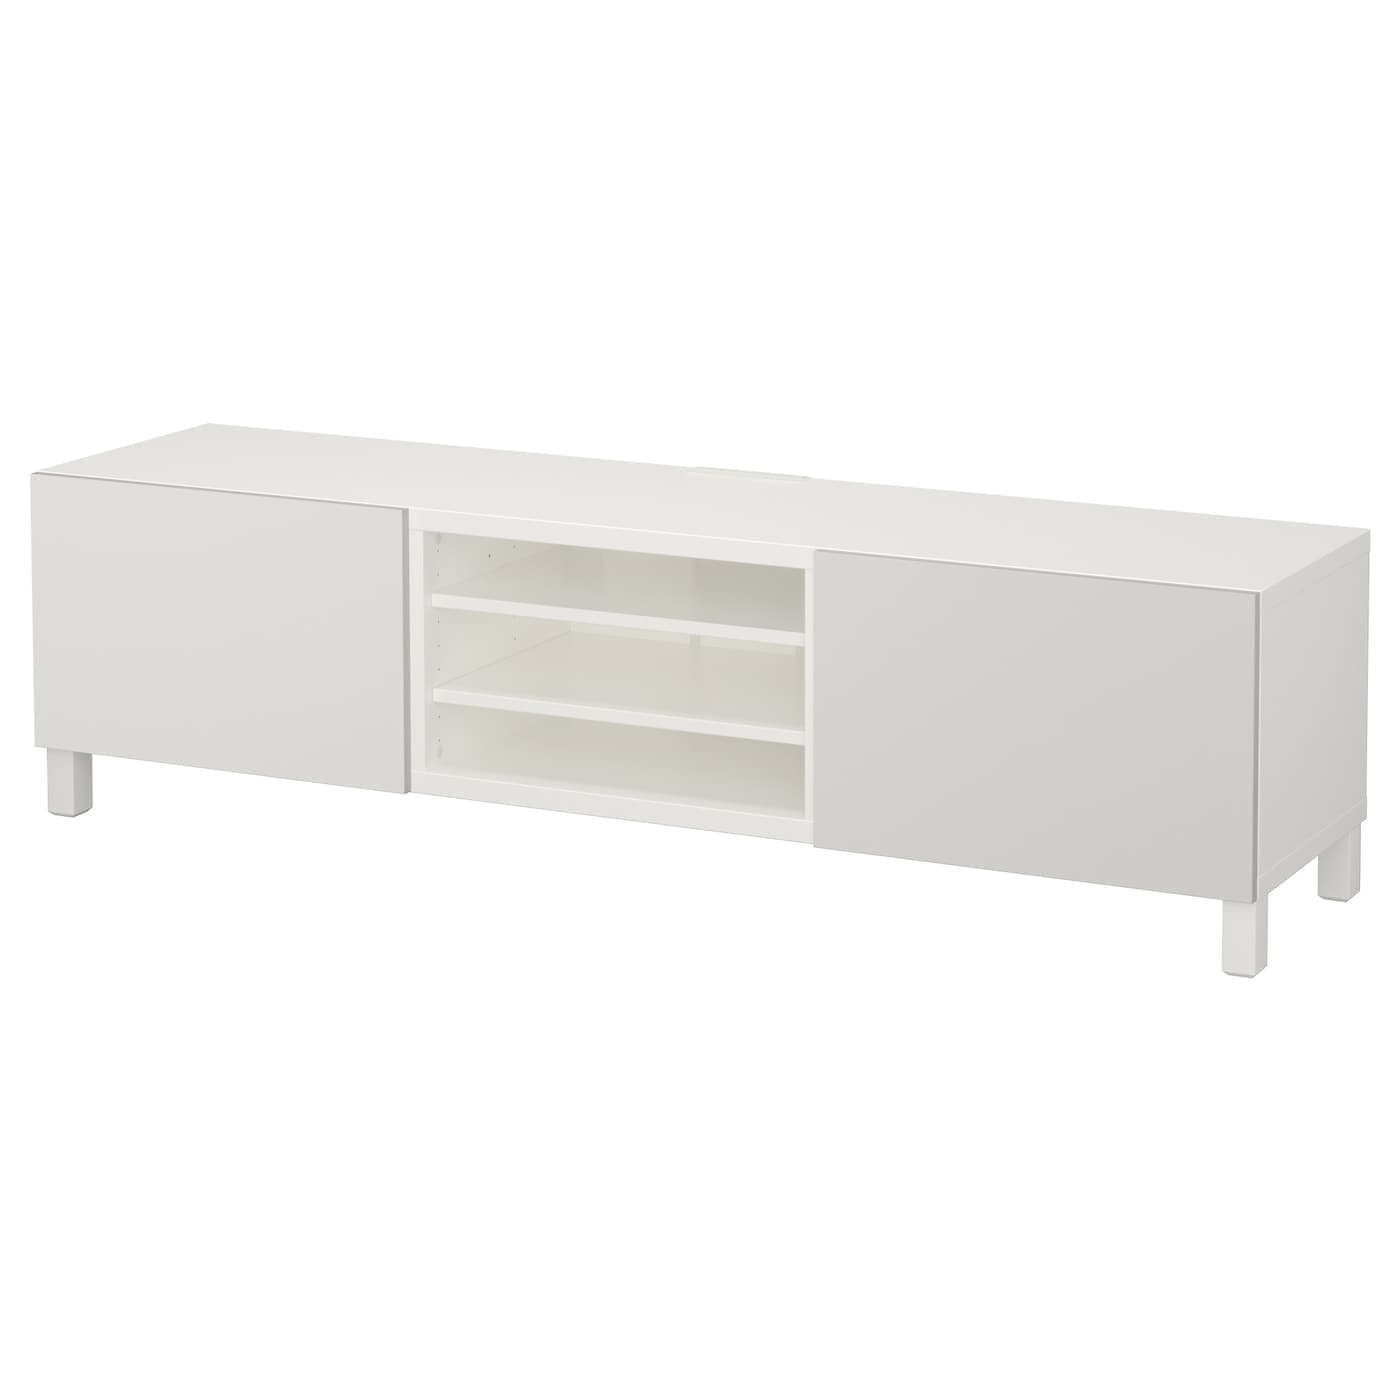 best banc tv avec tiroirs blanc lappviken gris clair 180x40x48 cm ikea. Black Bedroom Furniture Sets. Home Design Ideas